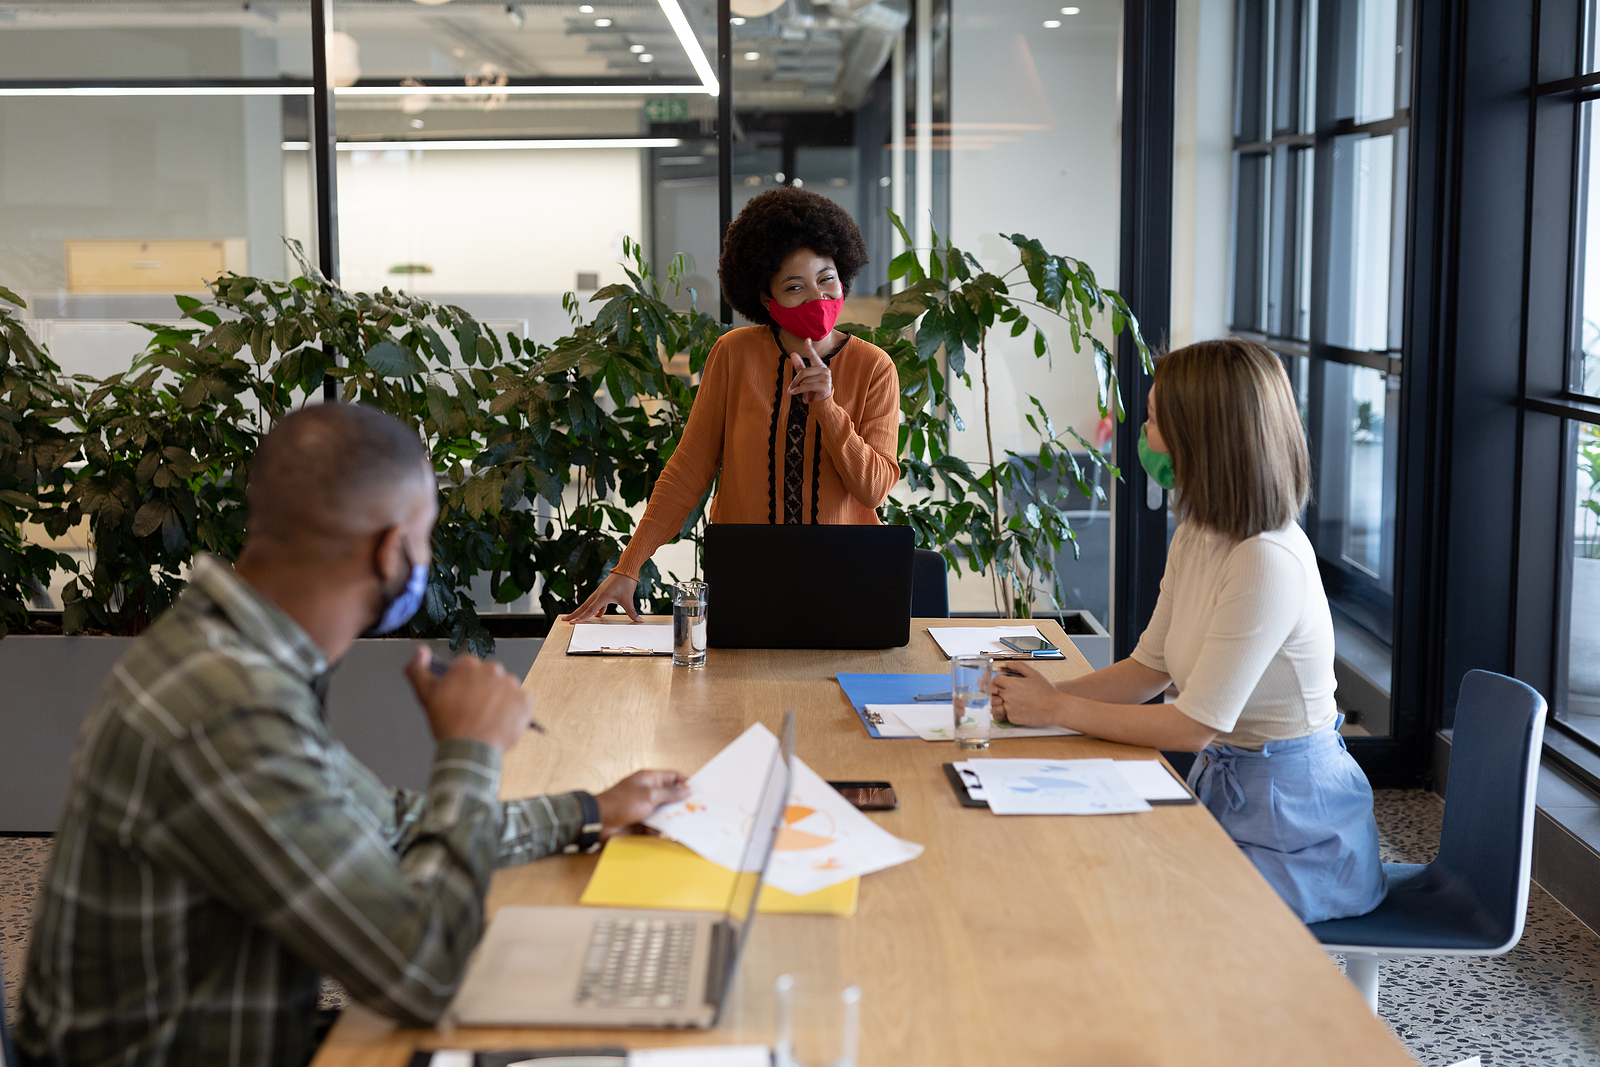 3 Ways To Assess A Company's Culture During Your Job Search